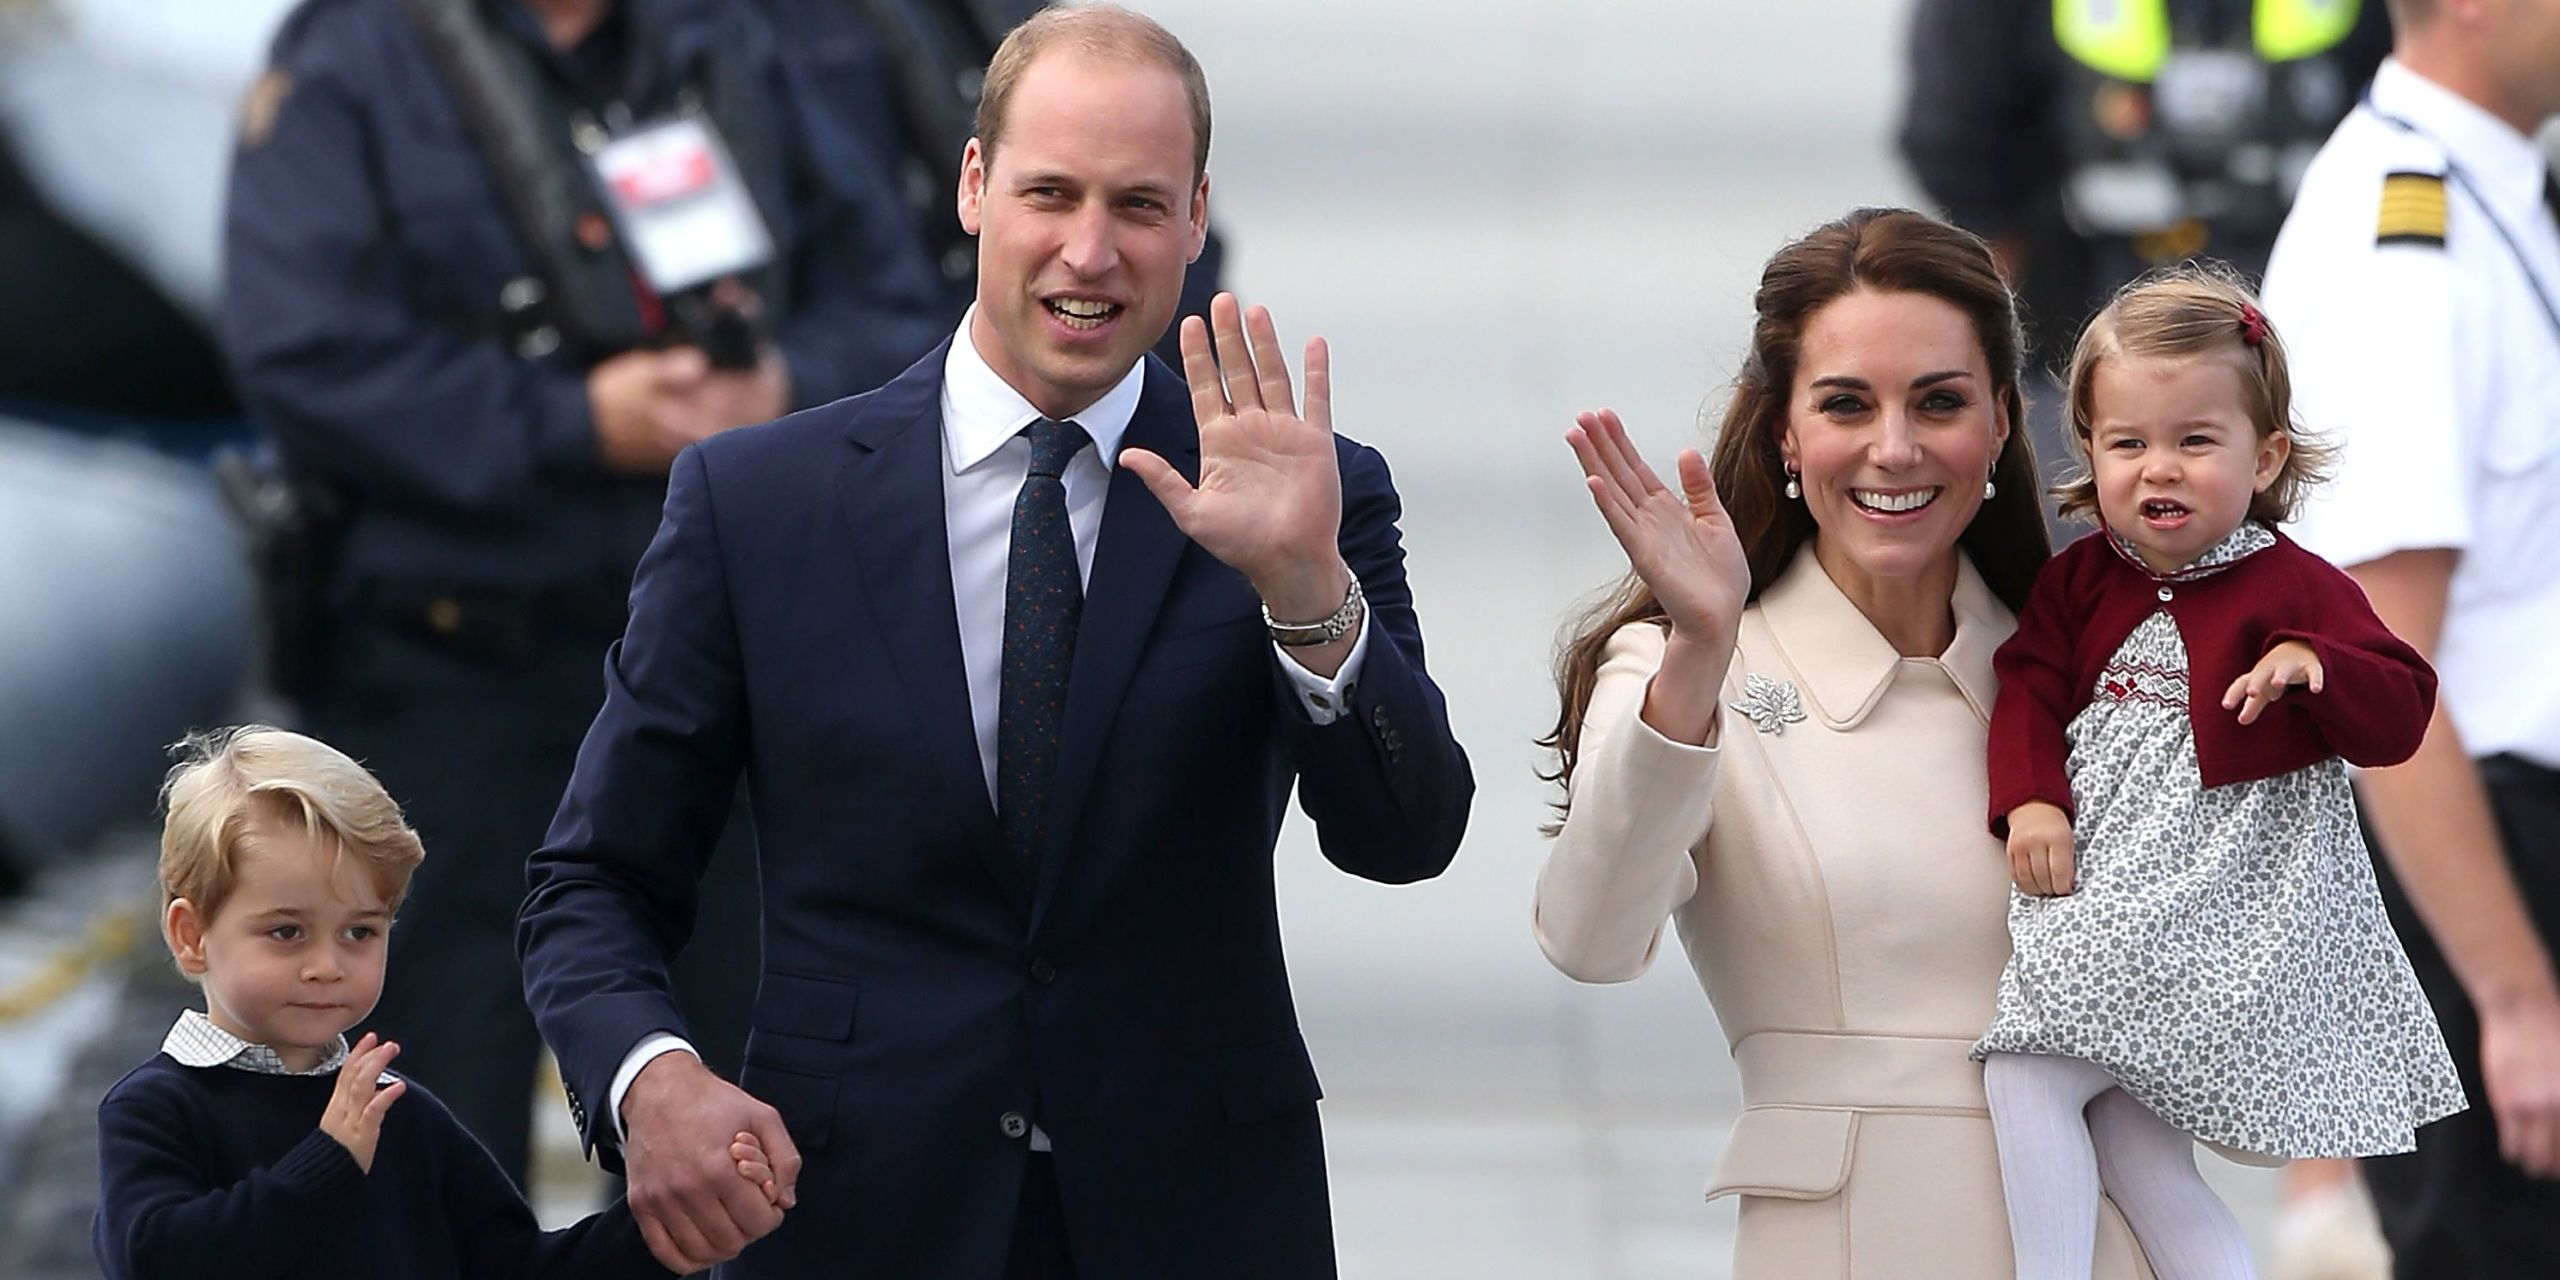 Everything We Know About the New Royal Baby So Far